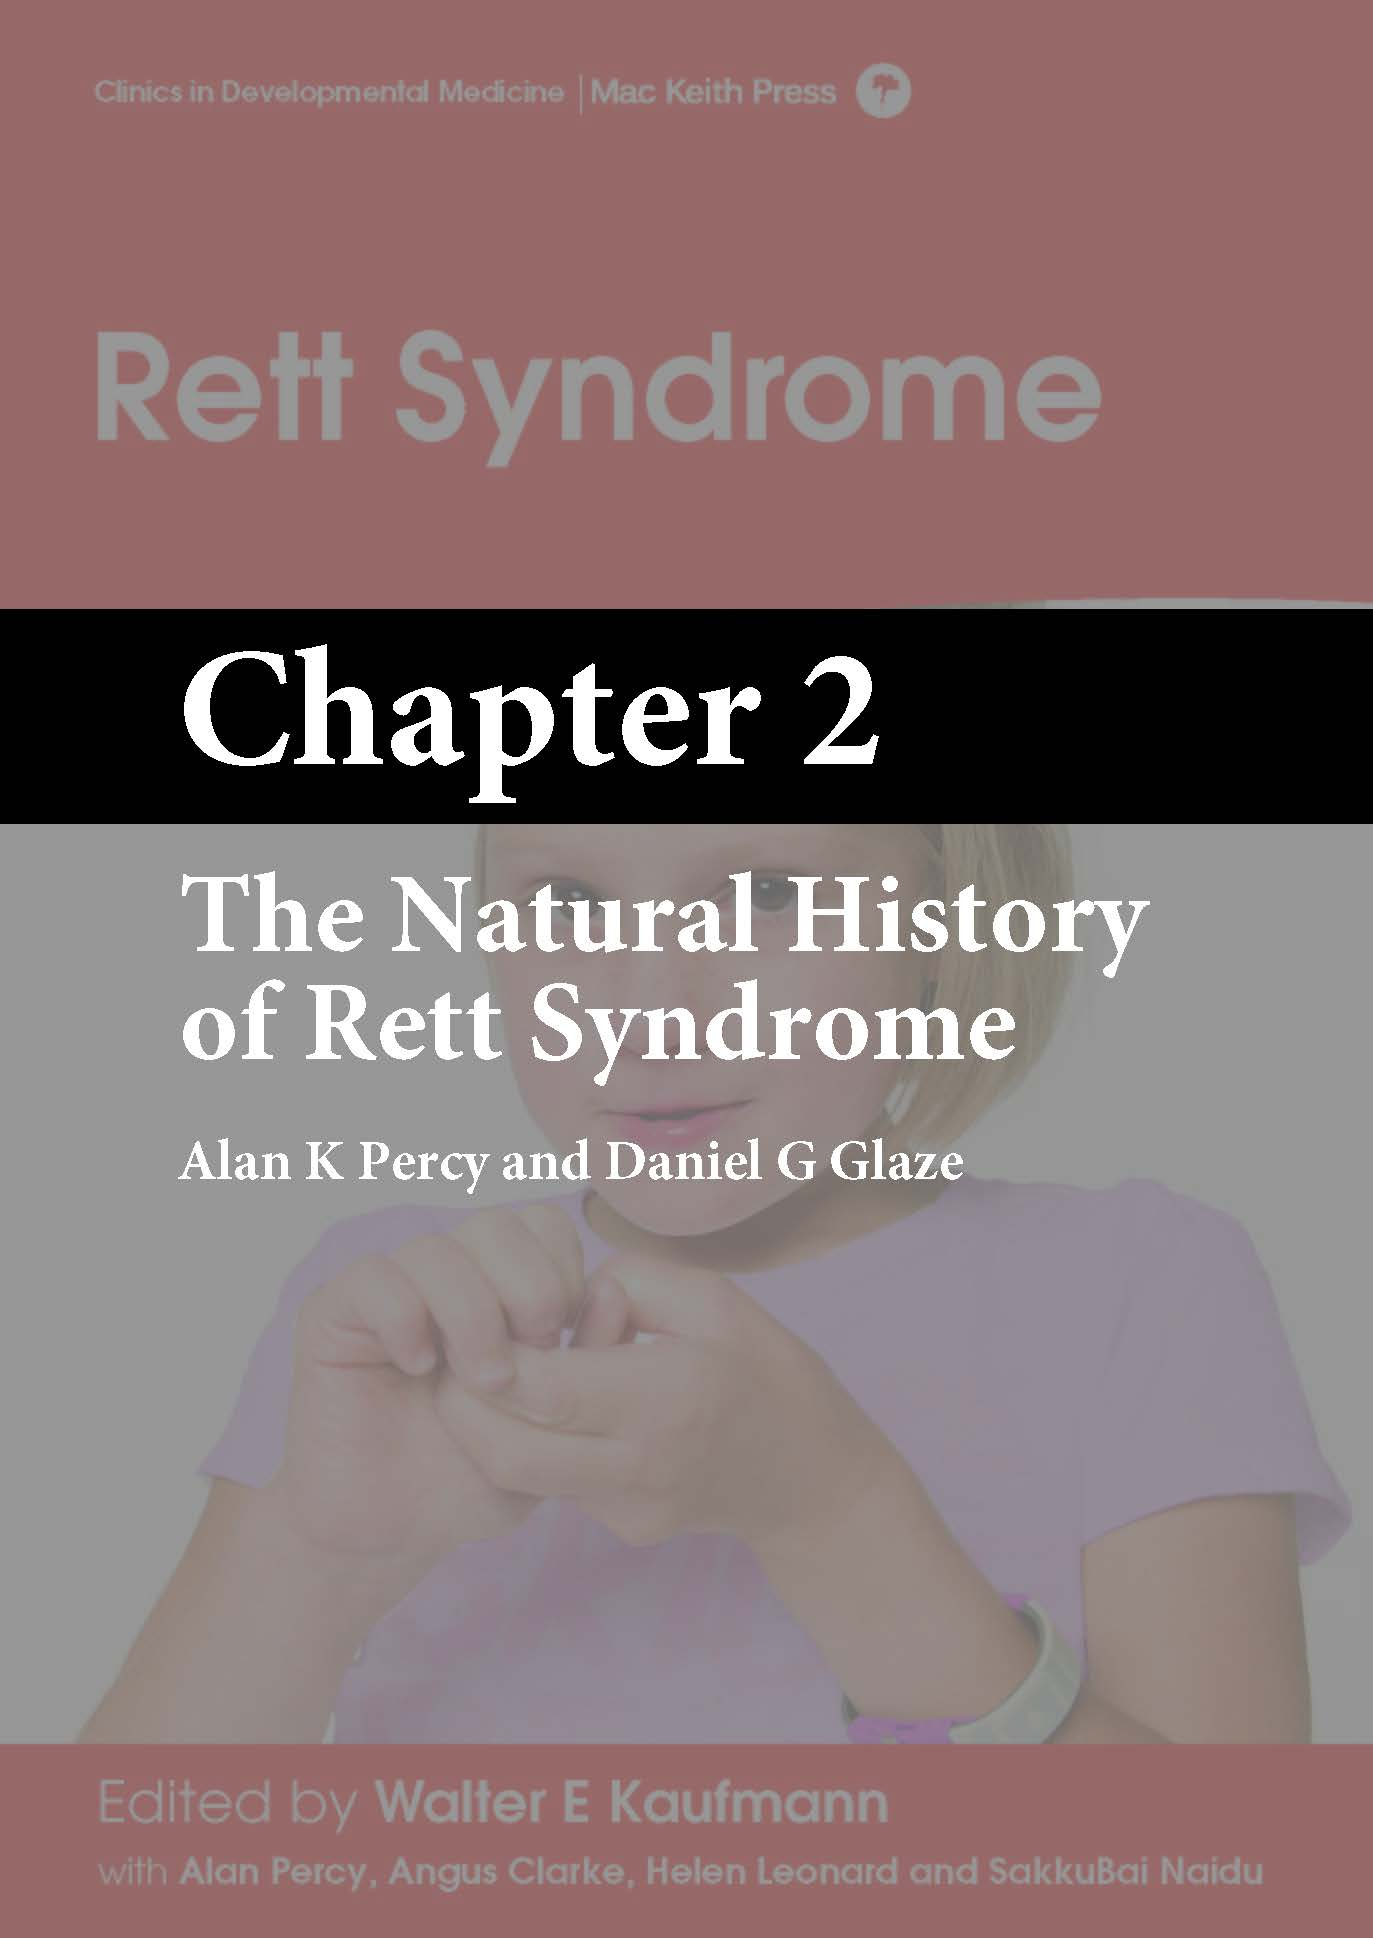 Rett Syndrome, Kaufmann, Chapter 2 cover